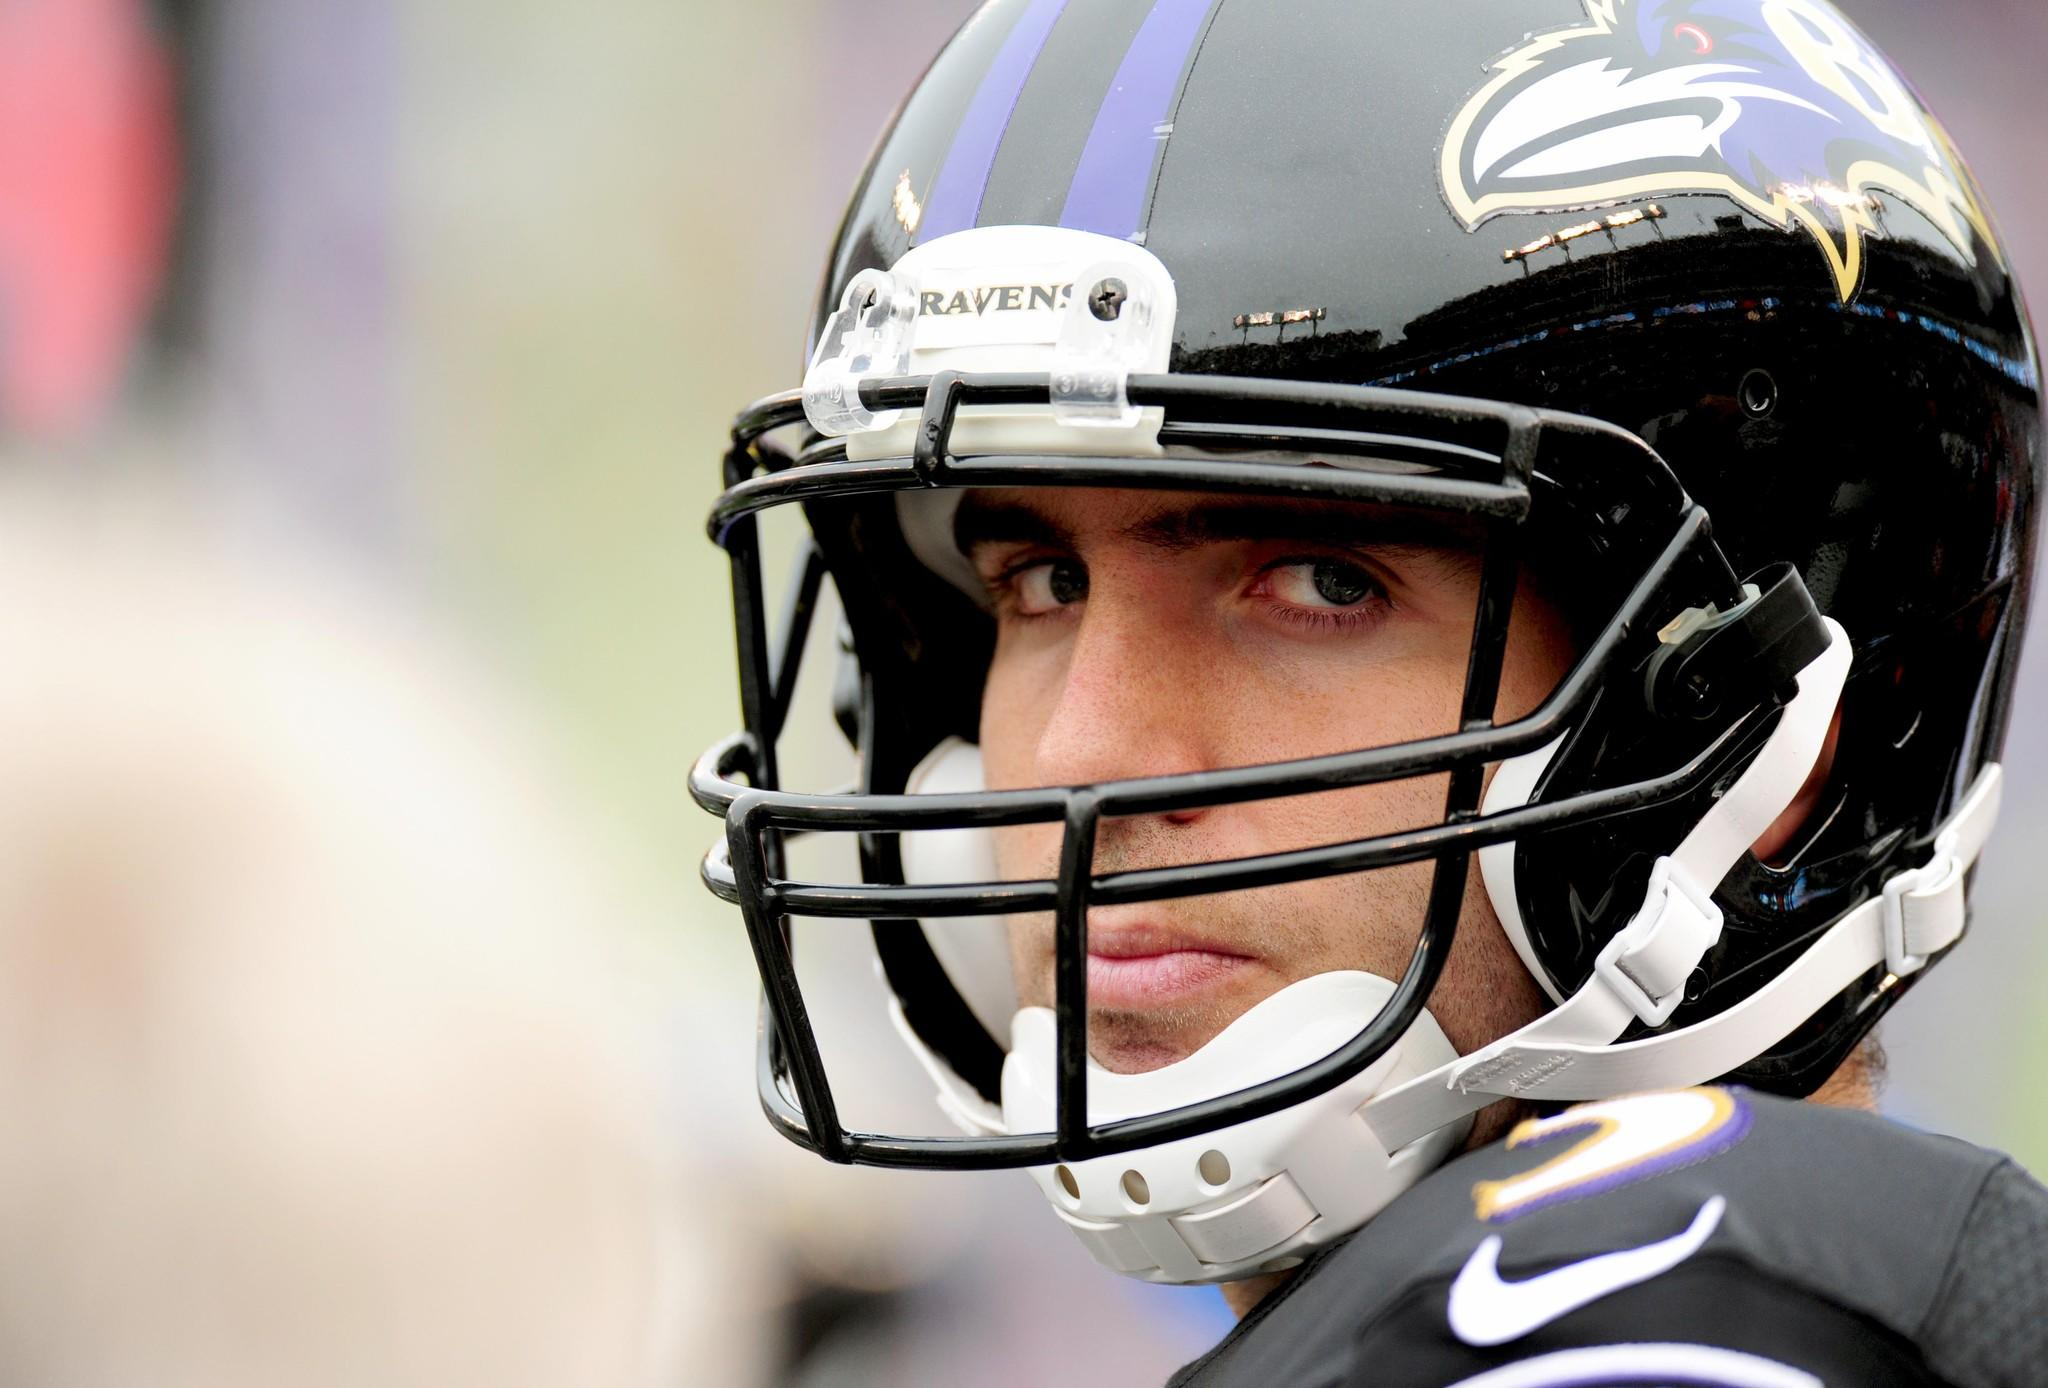 Only five NFL quarterbacks had a worse accuracy percentage than Joe Flacco in 2013.